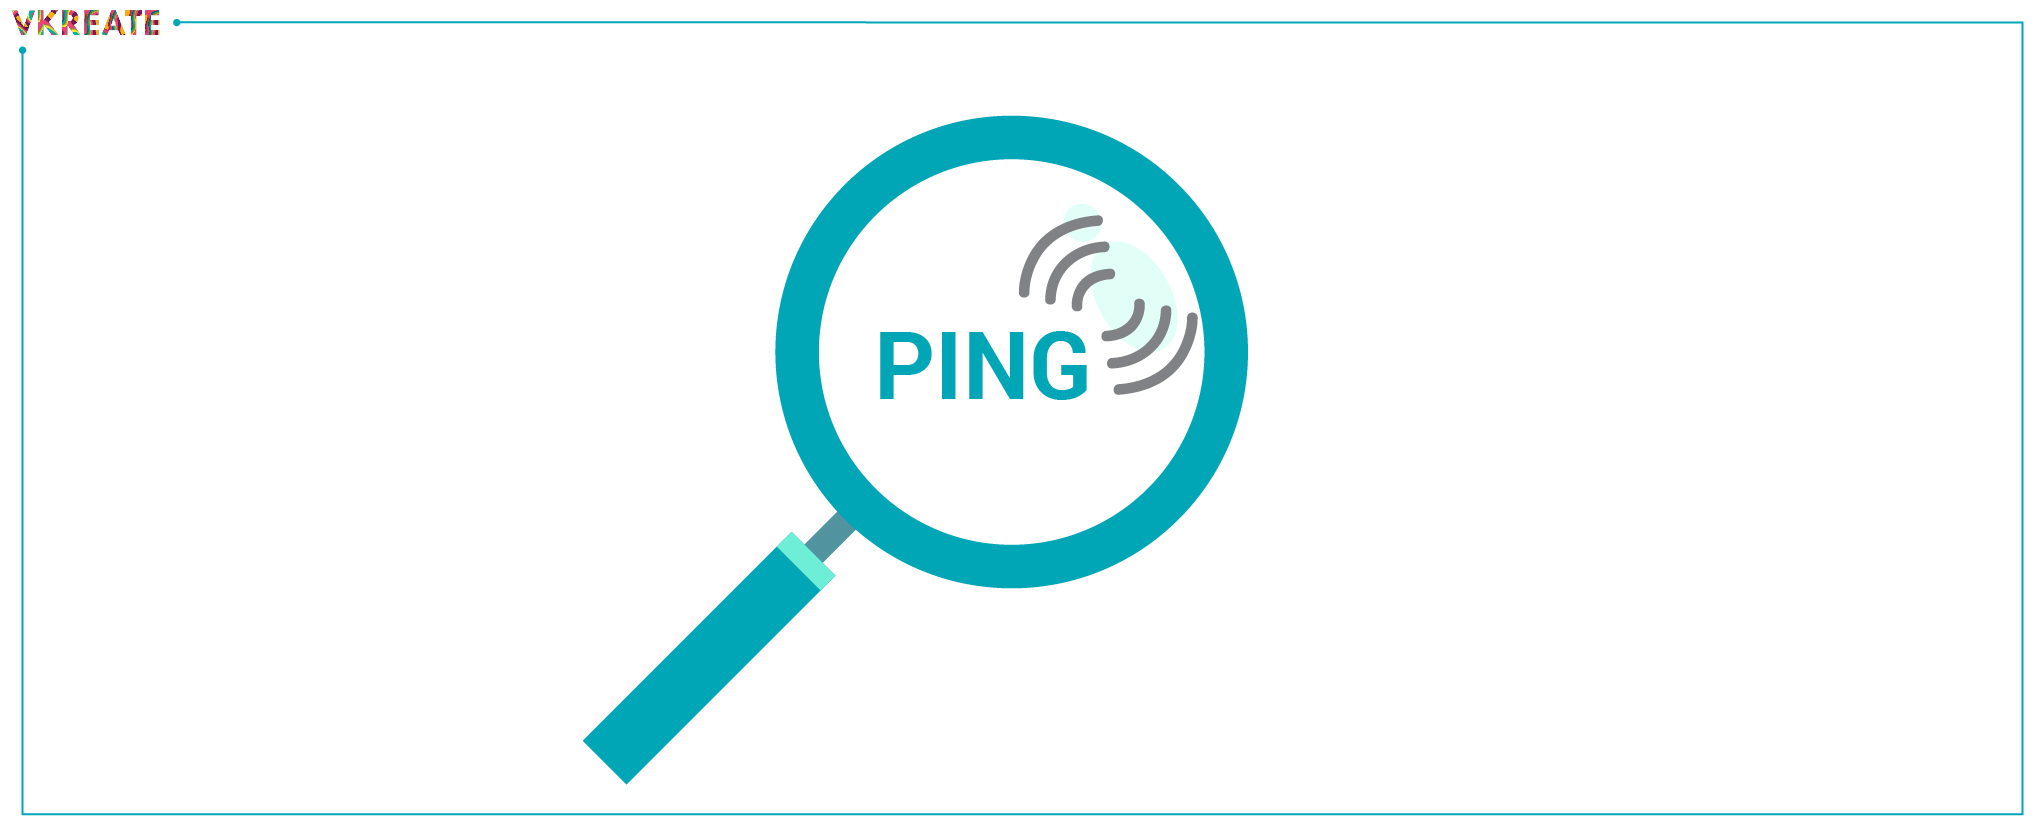 Ping submission sites list 2020 | Indexing Backlinks & Post Quickly